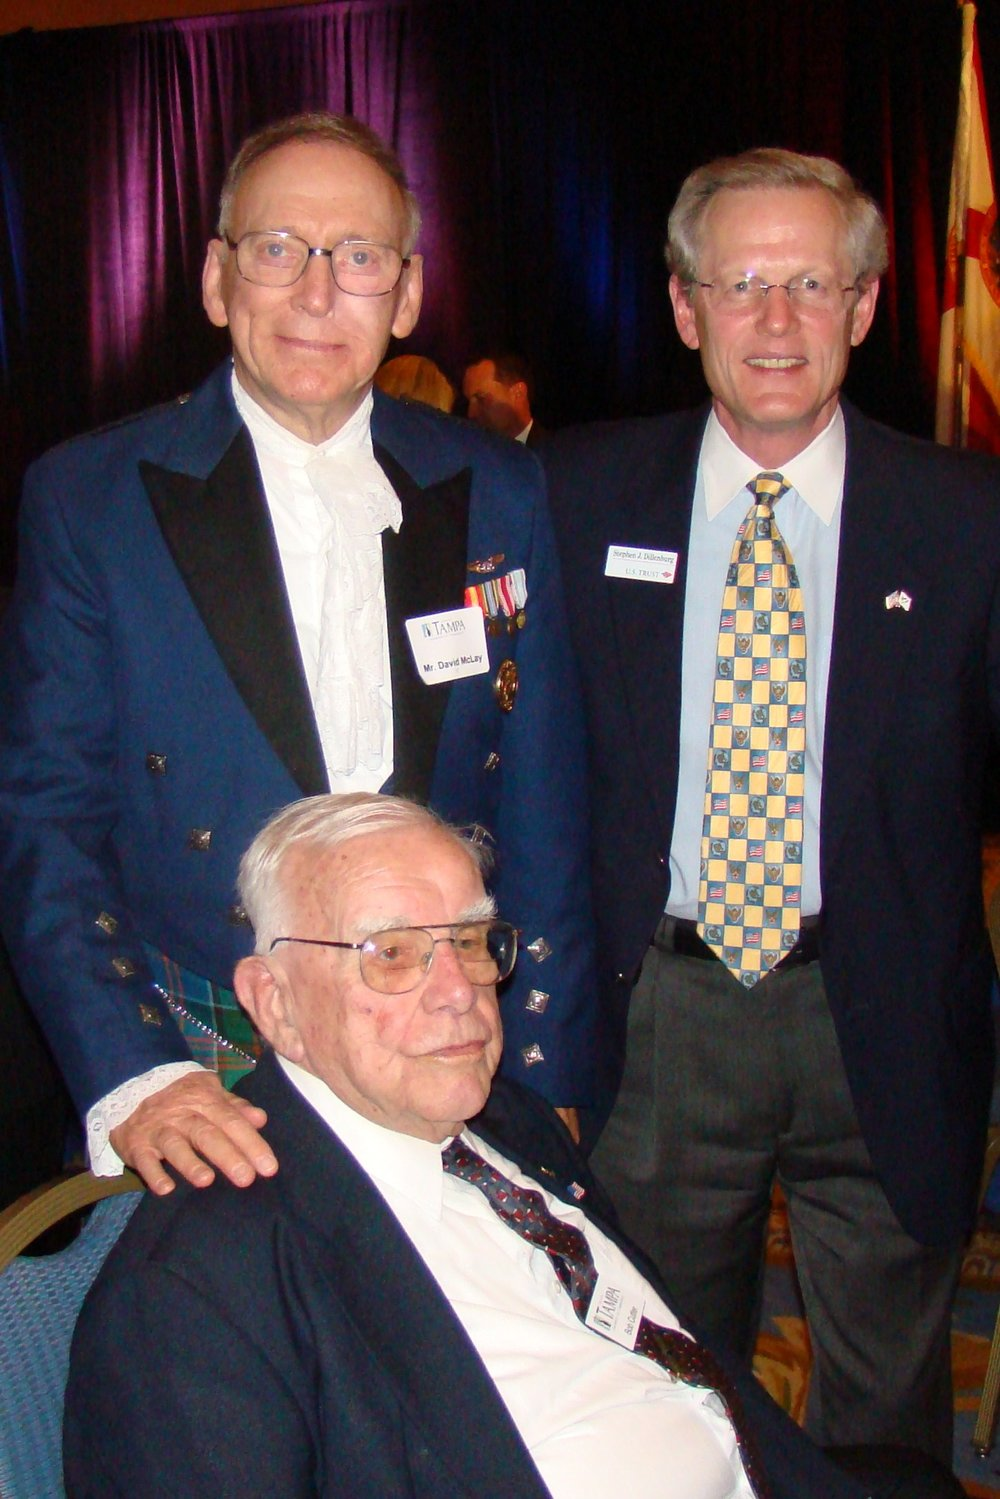 David McLay & Steve Dillenburg with Bob Cutler, 16 Feb '10.JPG